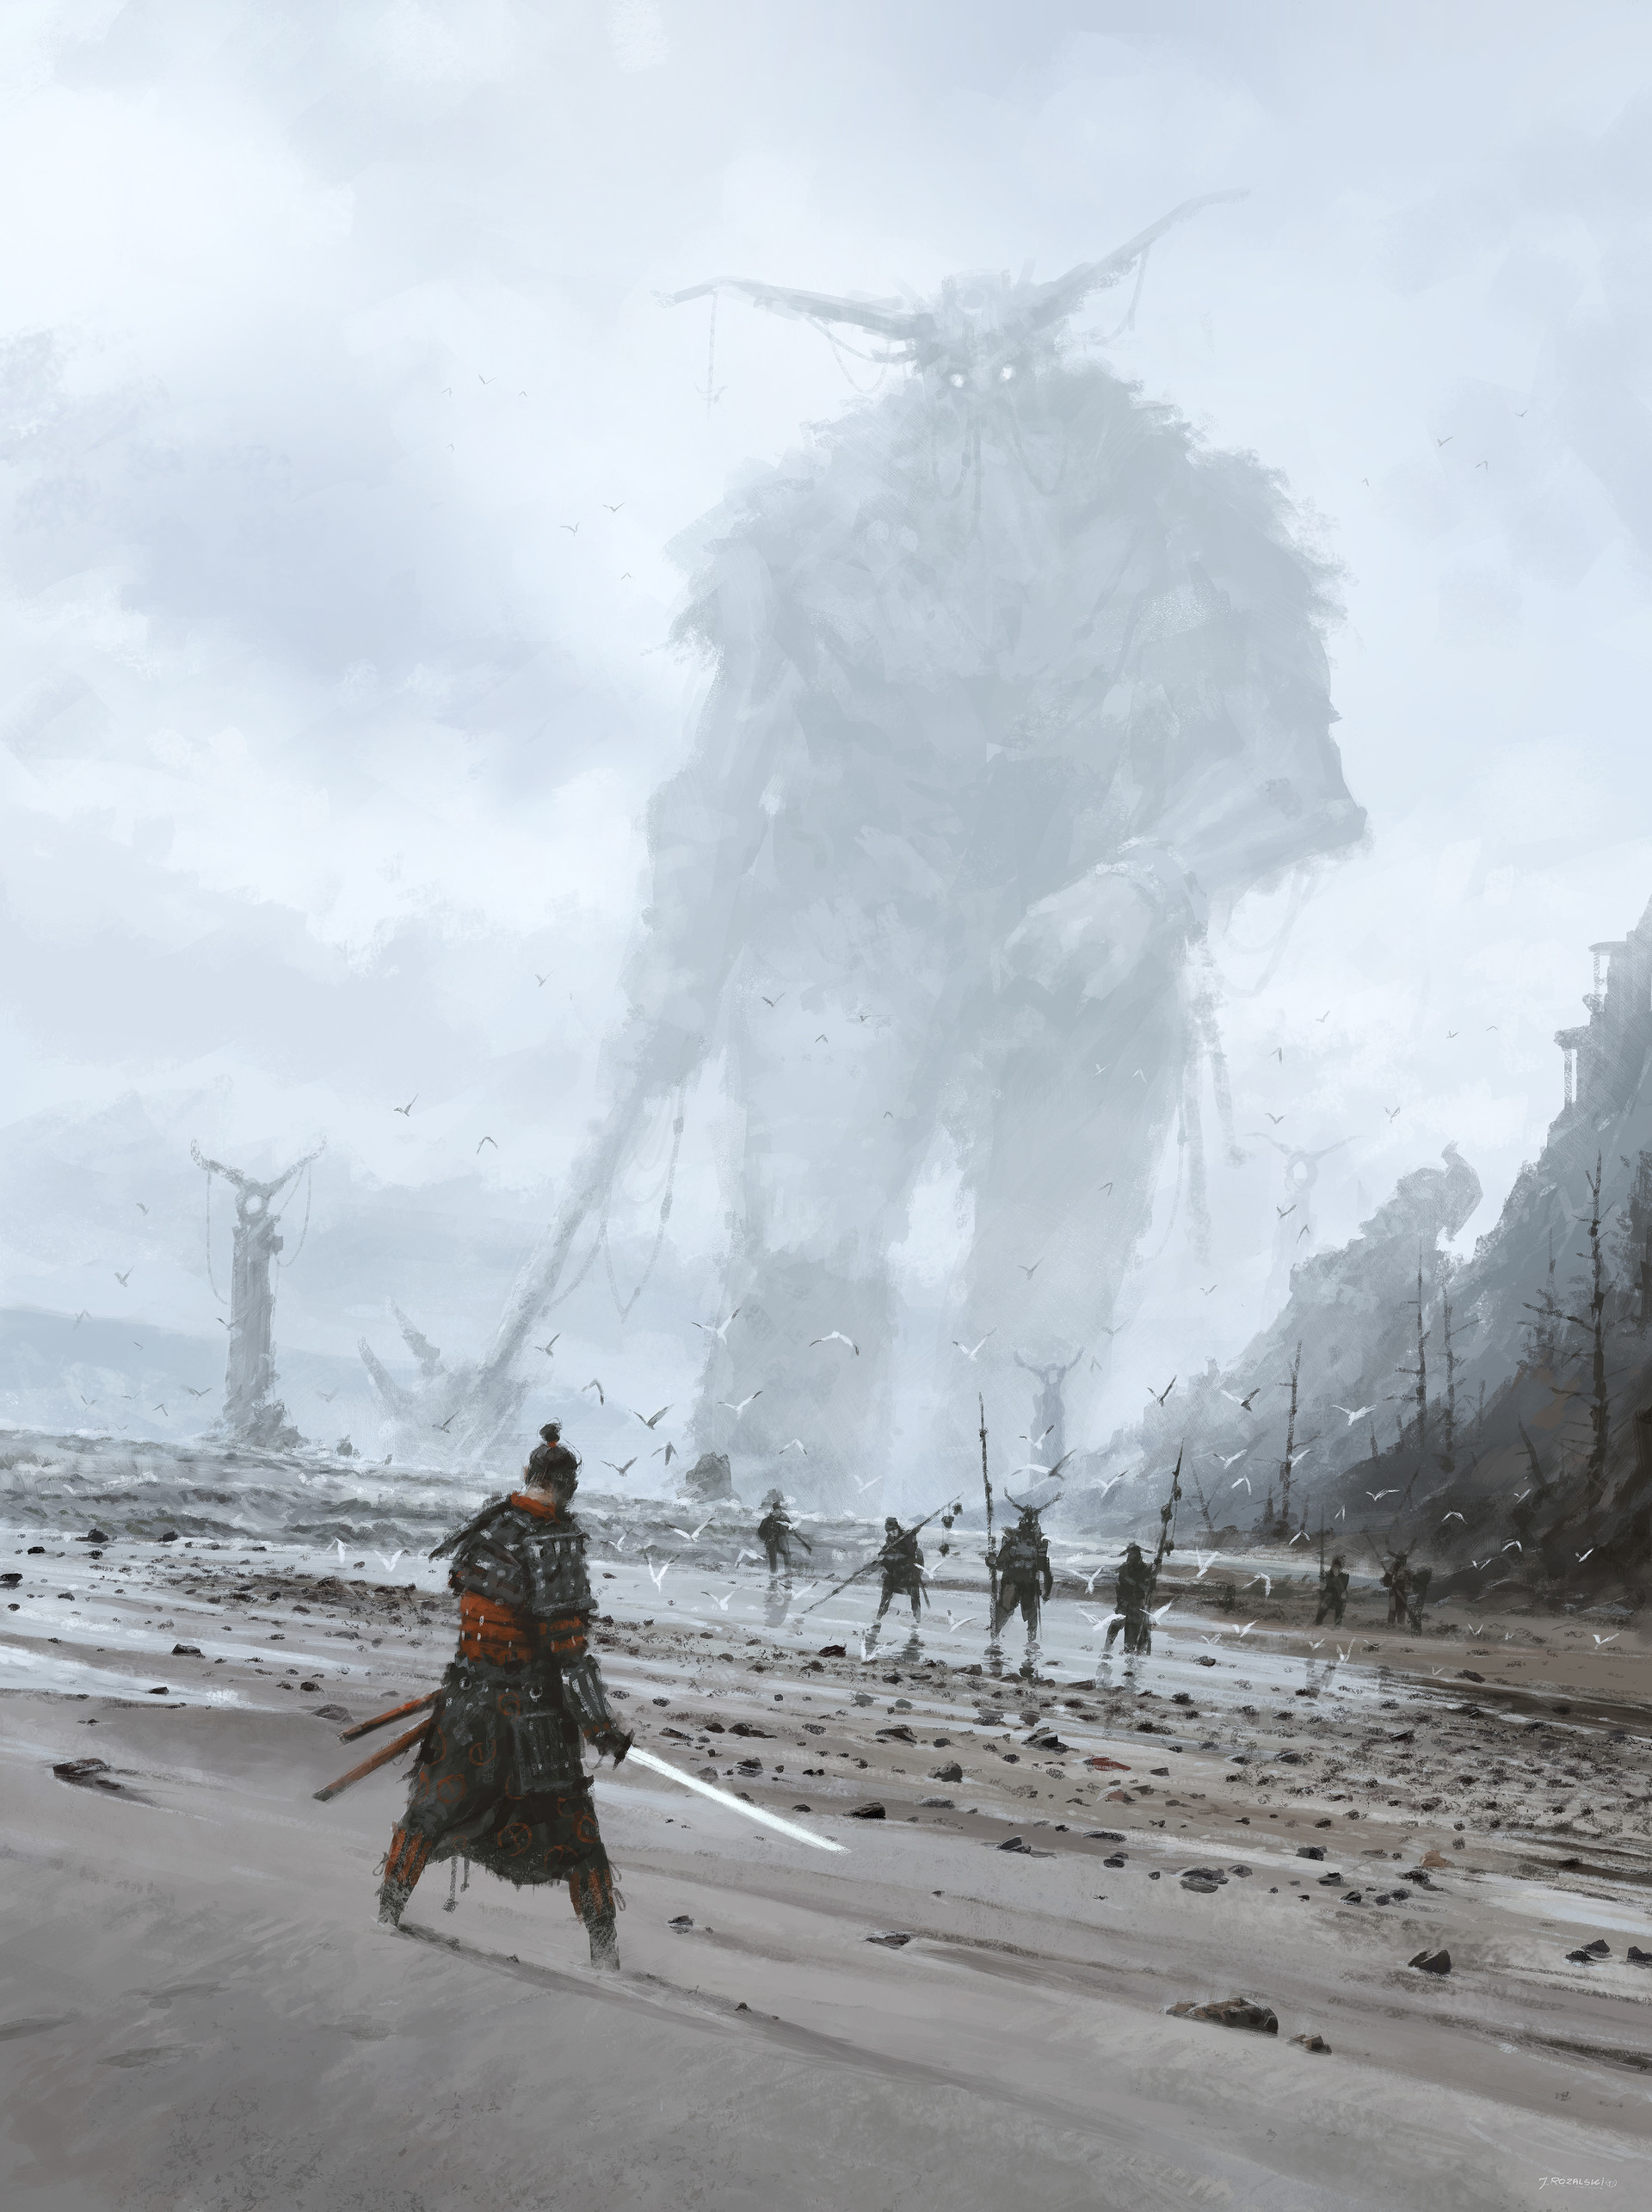 Jakub rozalski stranger on the strange land